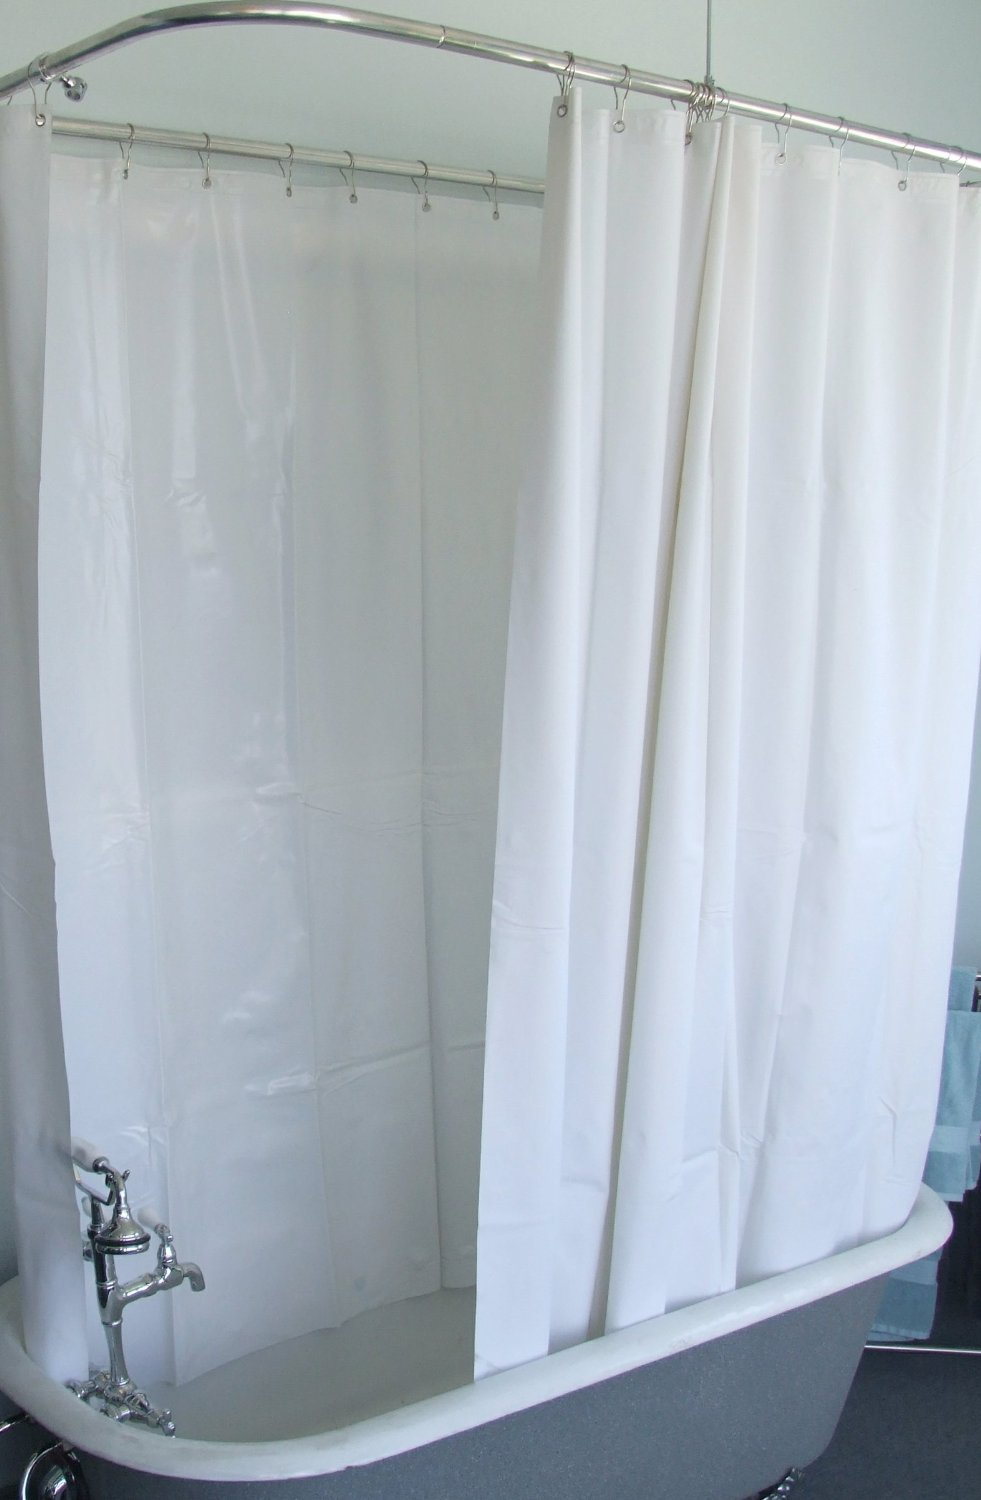 Get Quotations DL Extra Wide Vinyl Shower Curtain For A Clawfoot Tub White With Magnets 180